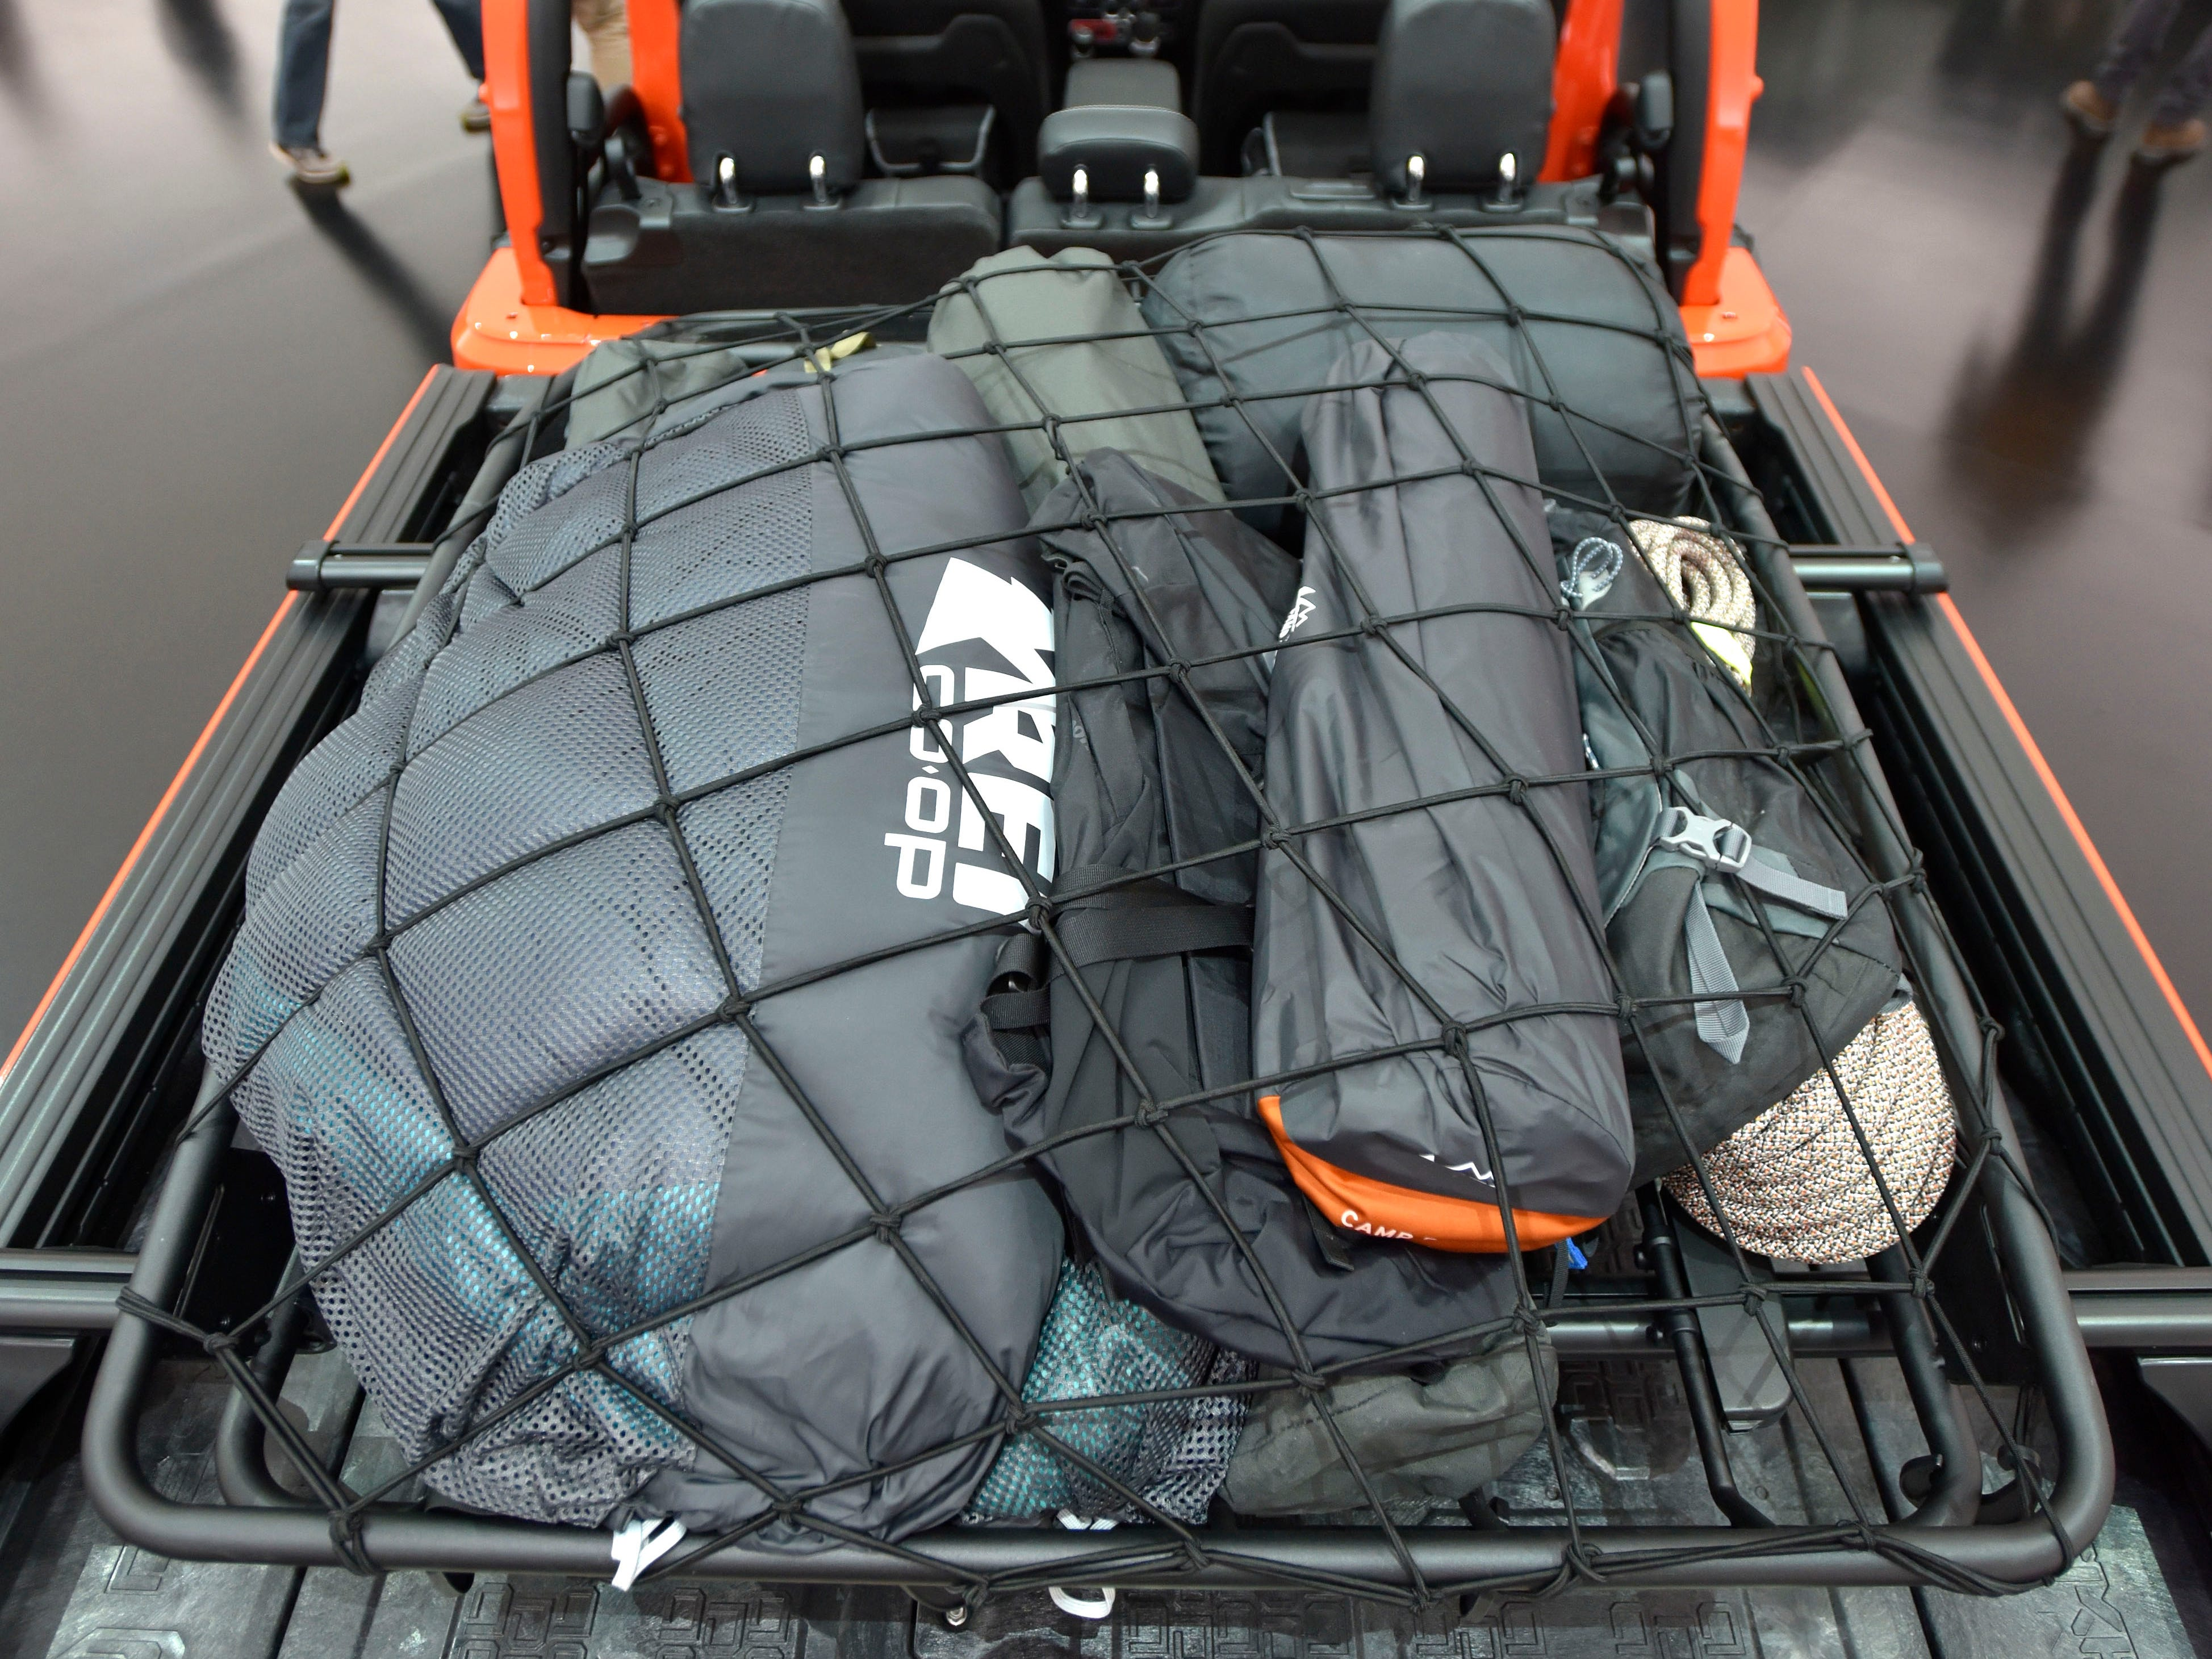 The bed of the Jeep Gladiator Gravity features a cargo basket.